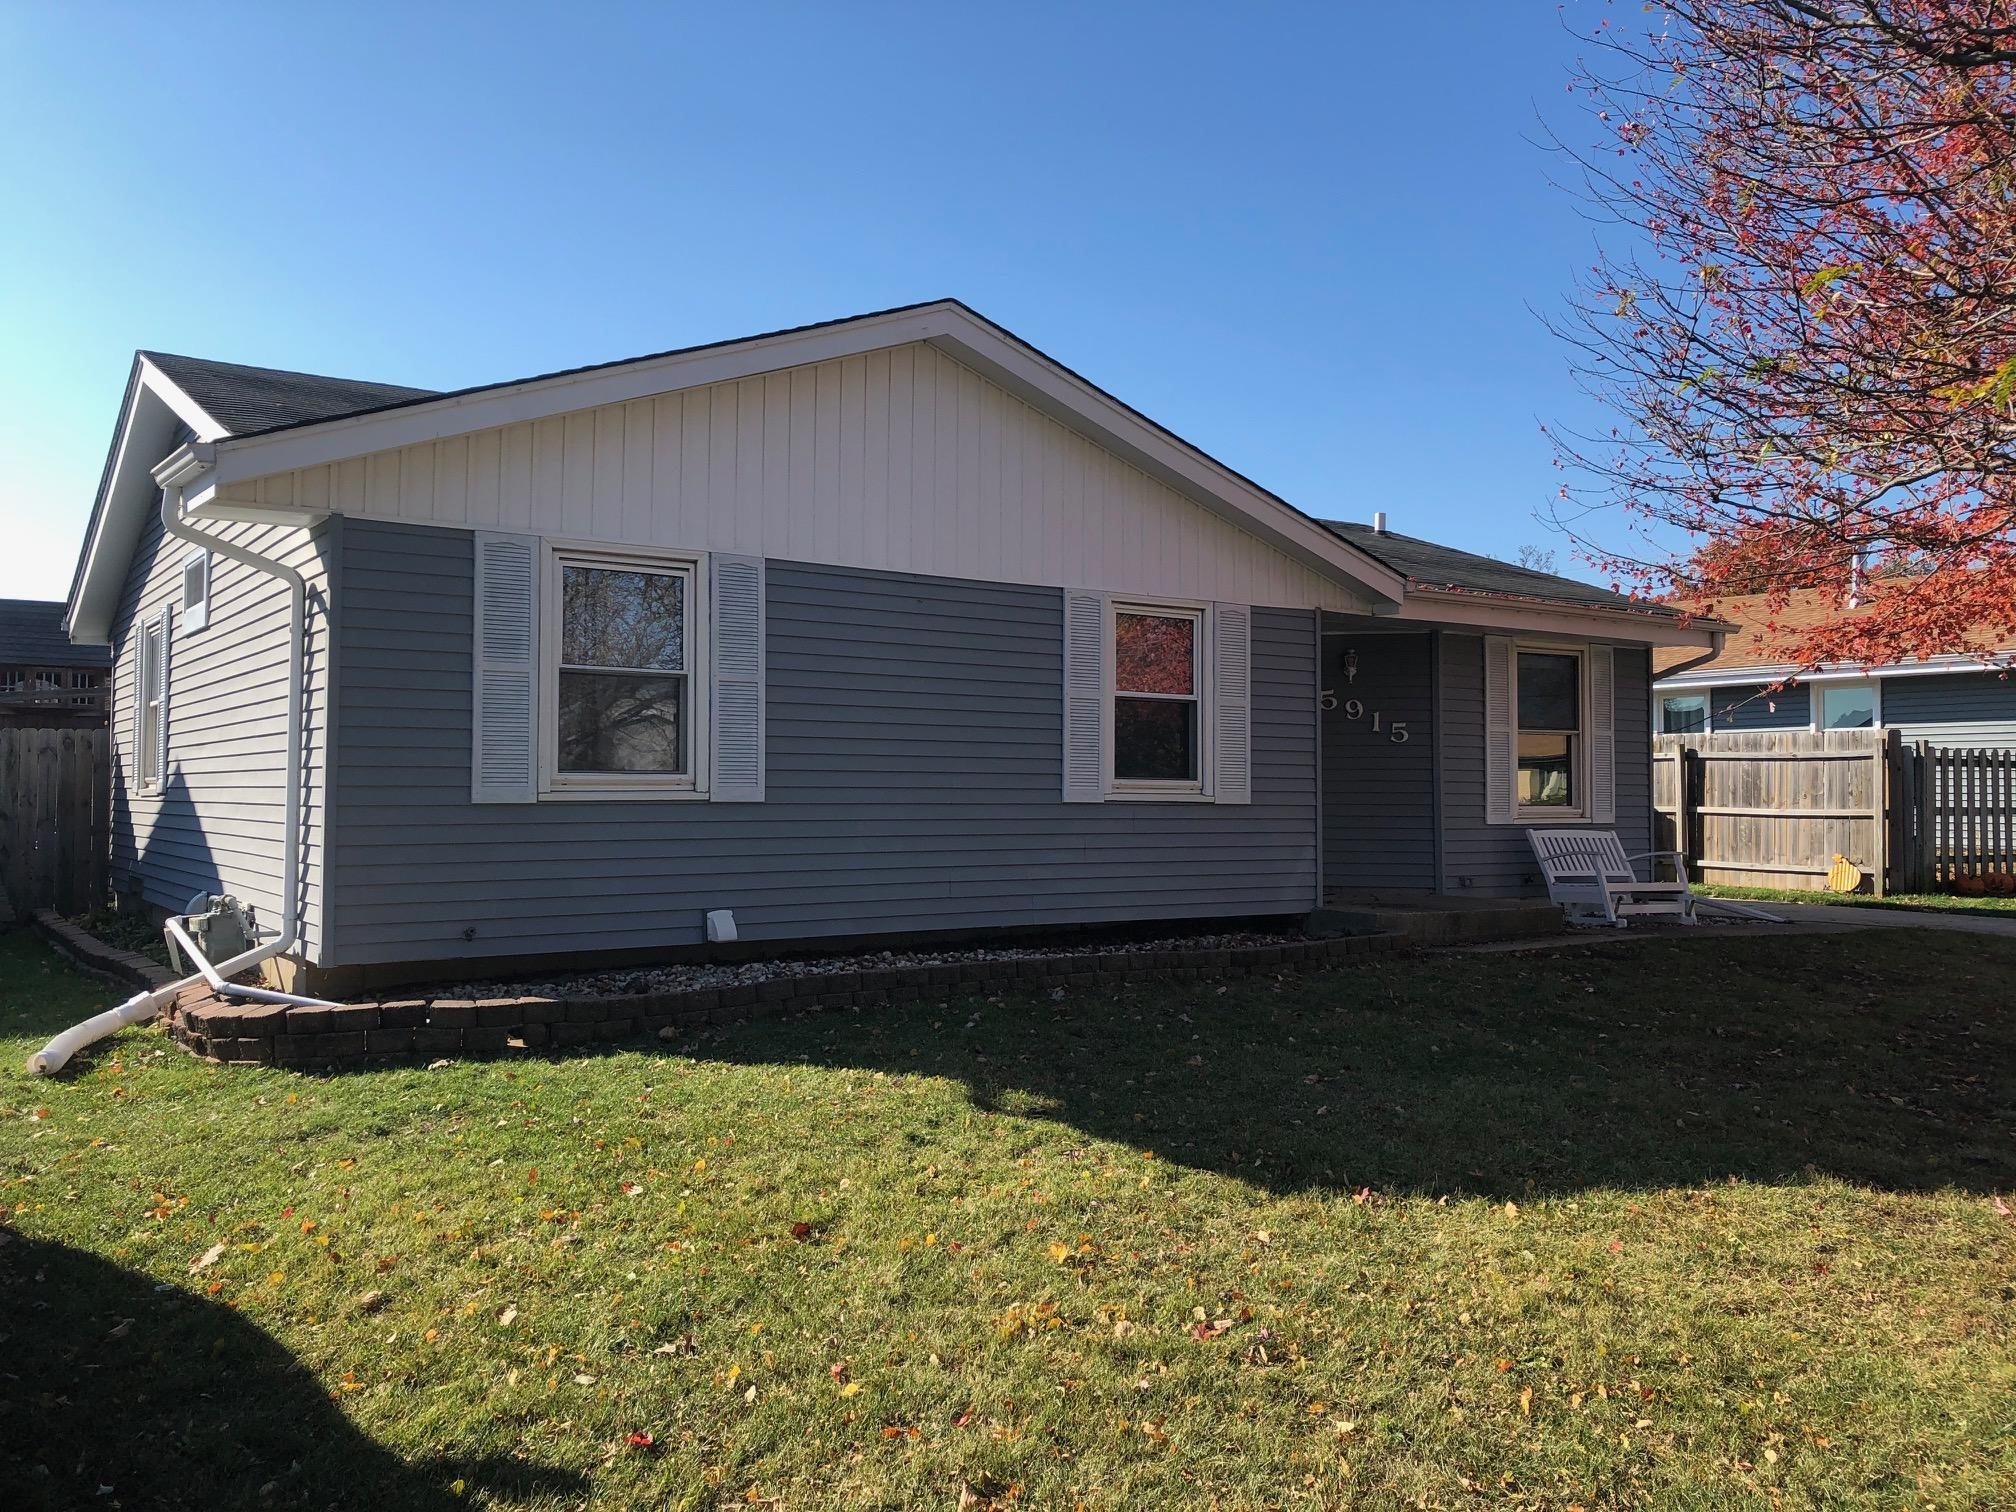 5915 68th St, Kenosha, Wisconsin 53142, 3 Bedrooms Bedrooms, 6 Rooms Rooms,2 BathroomsBathrooms,Single-family,For Sale,68th St,1722744